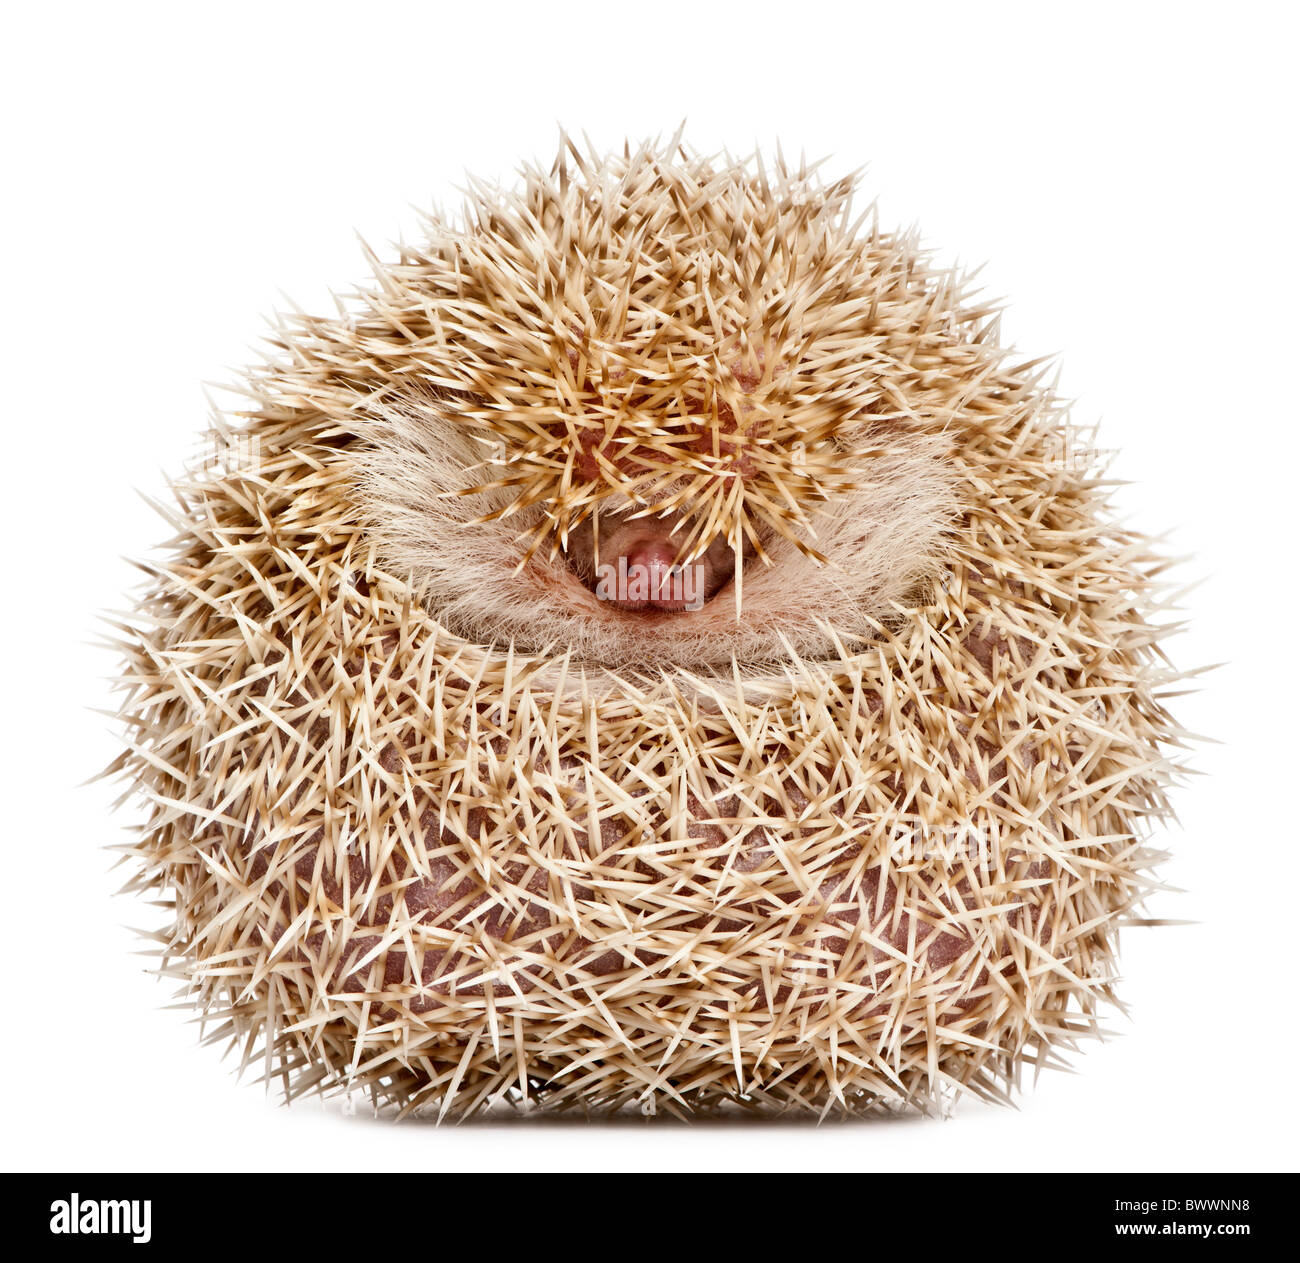 Four-toed Hedgehog, Atelerix albiventris, 2 years old, balled up in front of white background - Stock Image